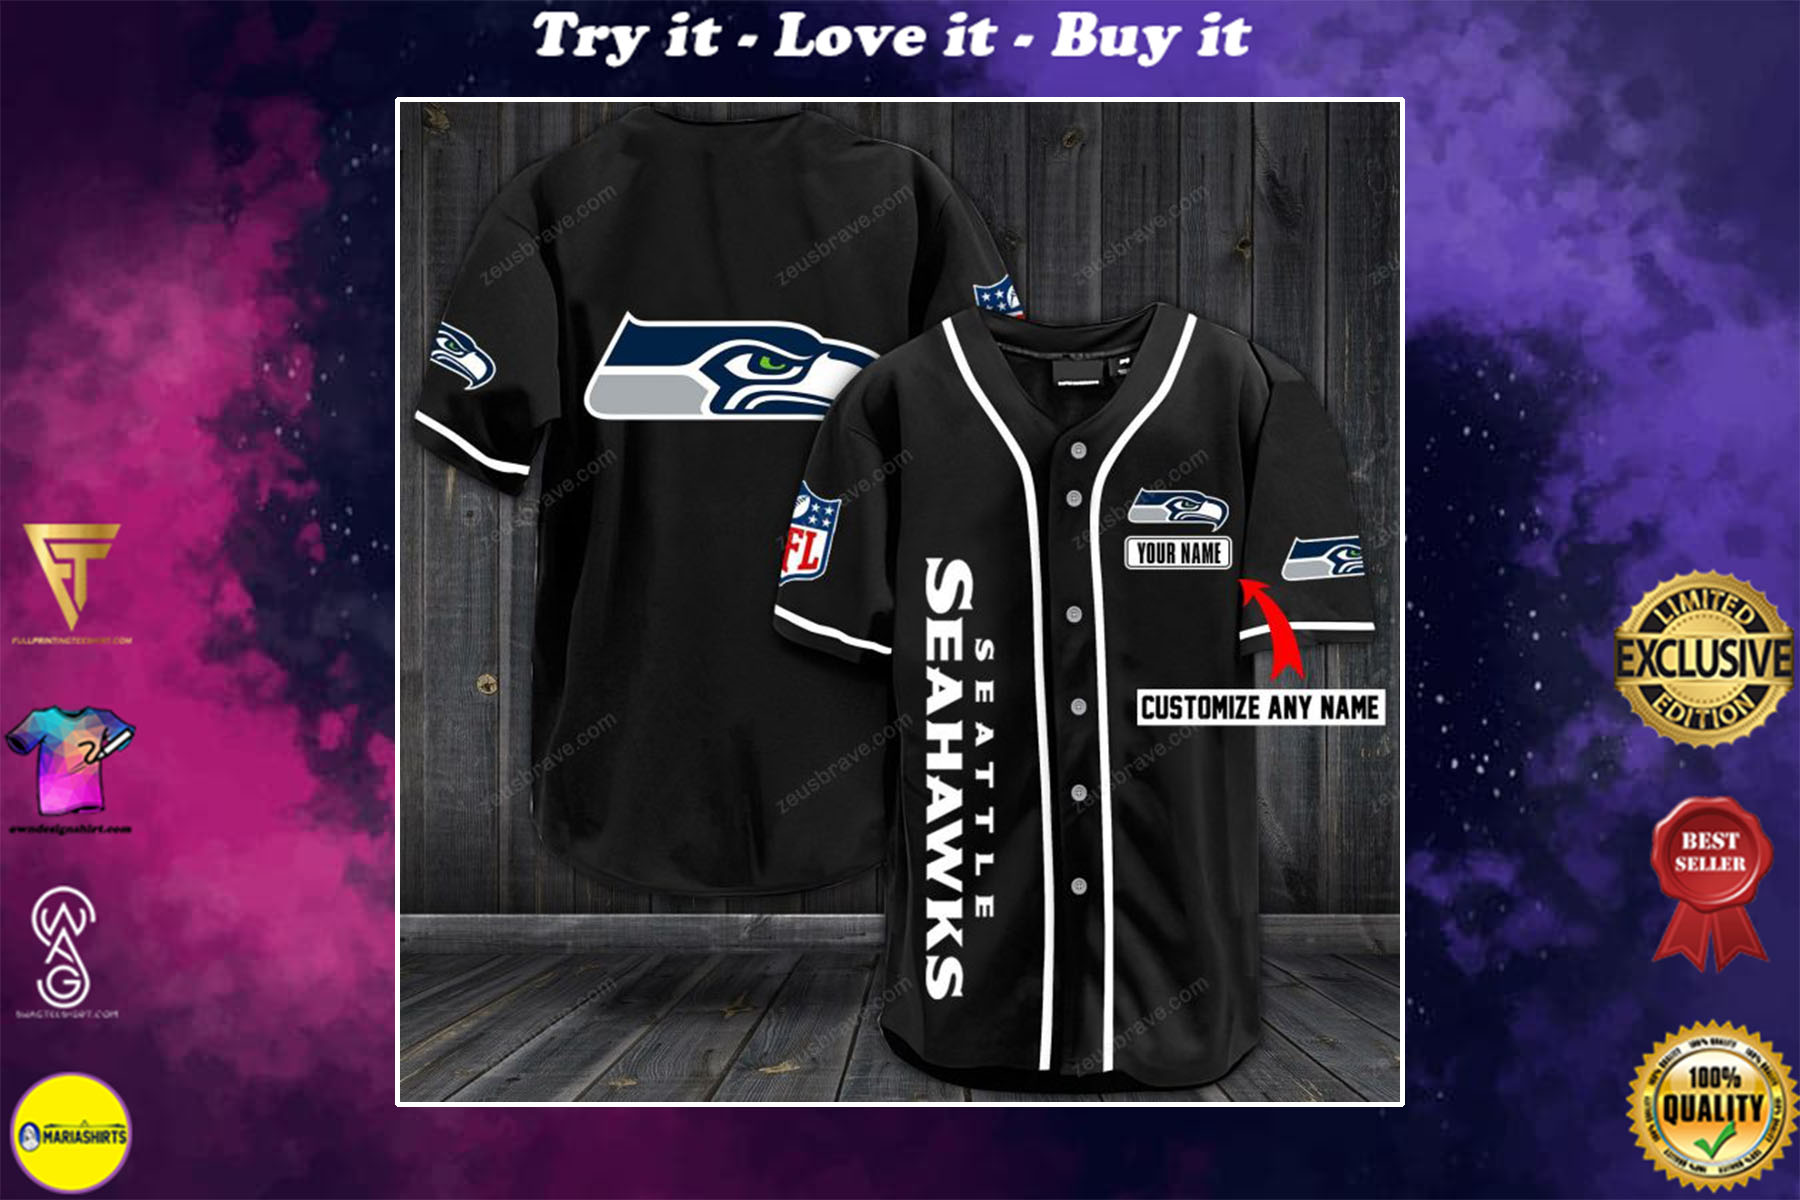 seahawks limited edition jersey